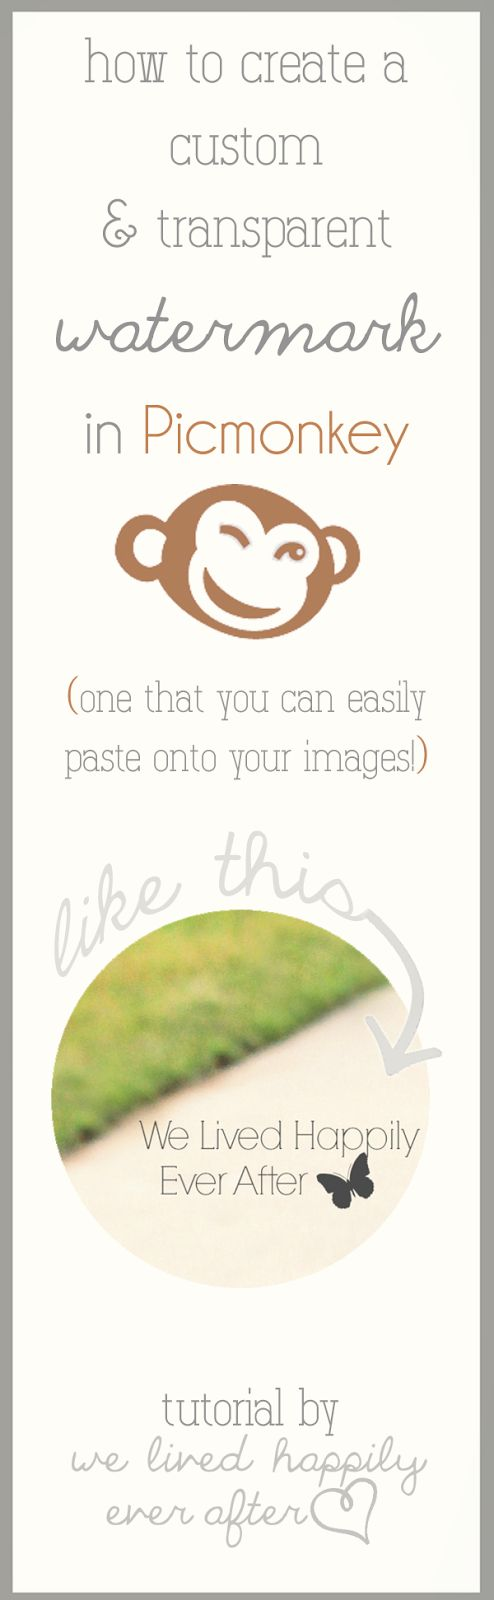 Picmonkey tutorial for creating watermarks